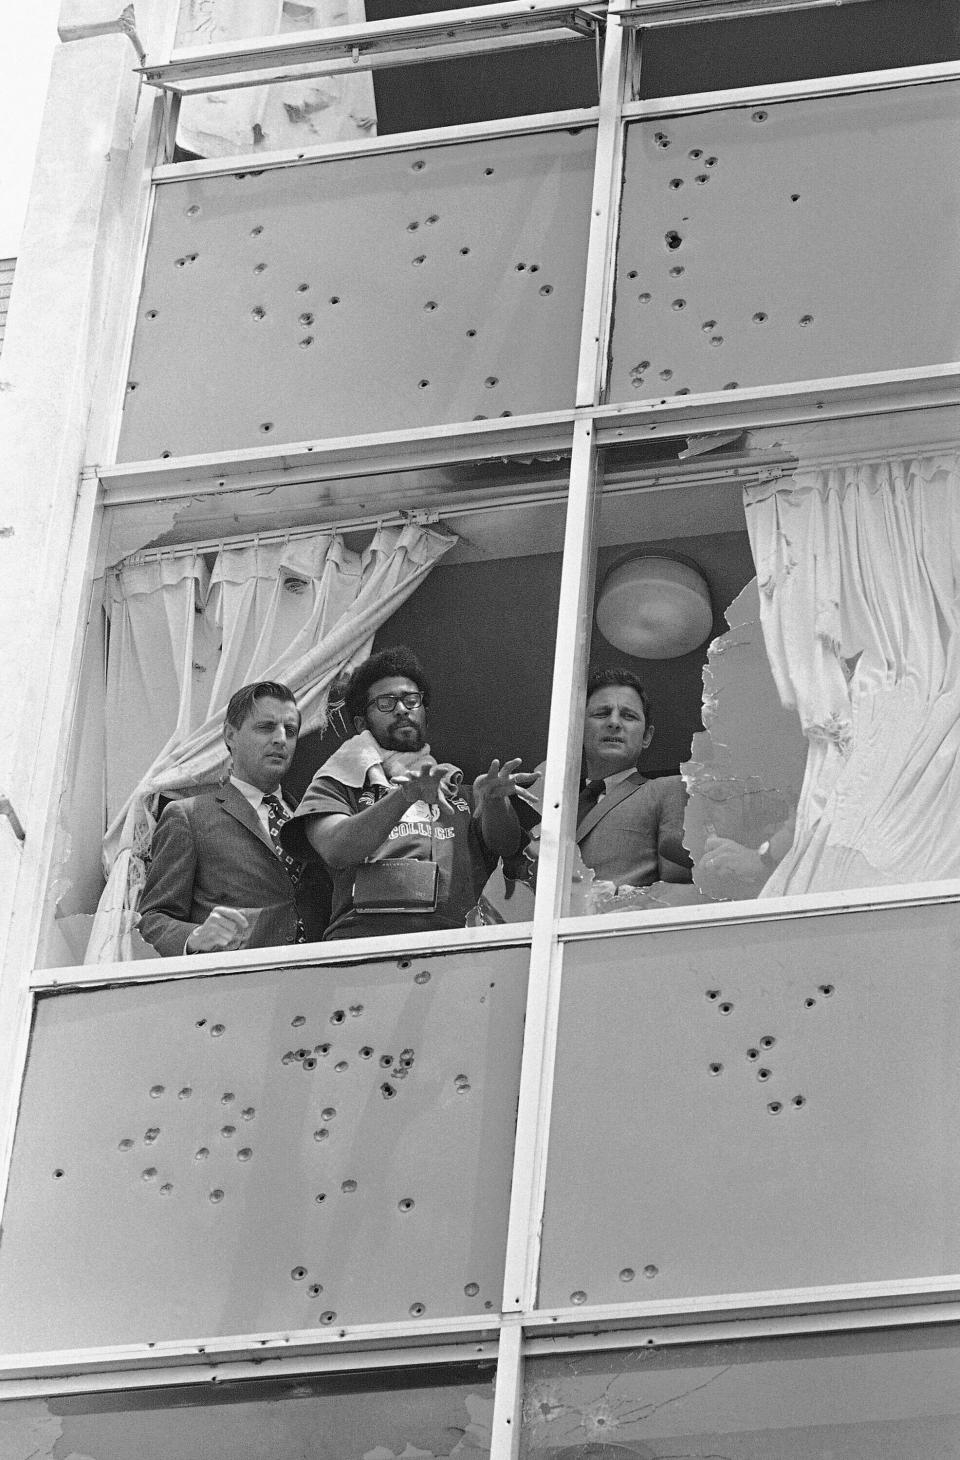 FILE - In this May 20, 1970, file photo, U.S. Sens. Walter Mondale, D-Minn., left, and Birch Bayh, D-Ind., right, look from the shattered windows of Alexander Hall, a women's dormitory, during a visit to Jackson State College, in Jackson, Miss., days after an assault by local white police and members of the Mississippi Highway Patrol, who claimed they had seen a sniper. Pointing out the view is student Carl Griffin. The historically Black school canceled its 1970 commencement after the violent incident. Fifty-one years later, the school now called Jackson State University is honoring its Class of 1970, as members are being invited back to salute their academic achievements with a graduation ceremony on Saturday, May 15, 2021. (AP Photo, File)